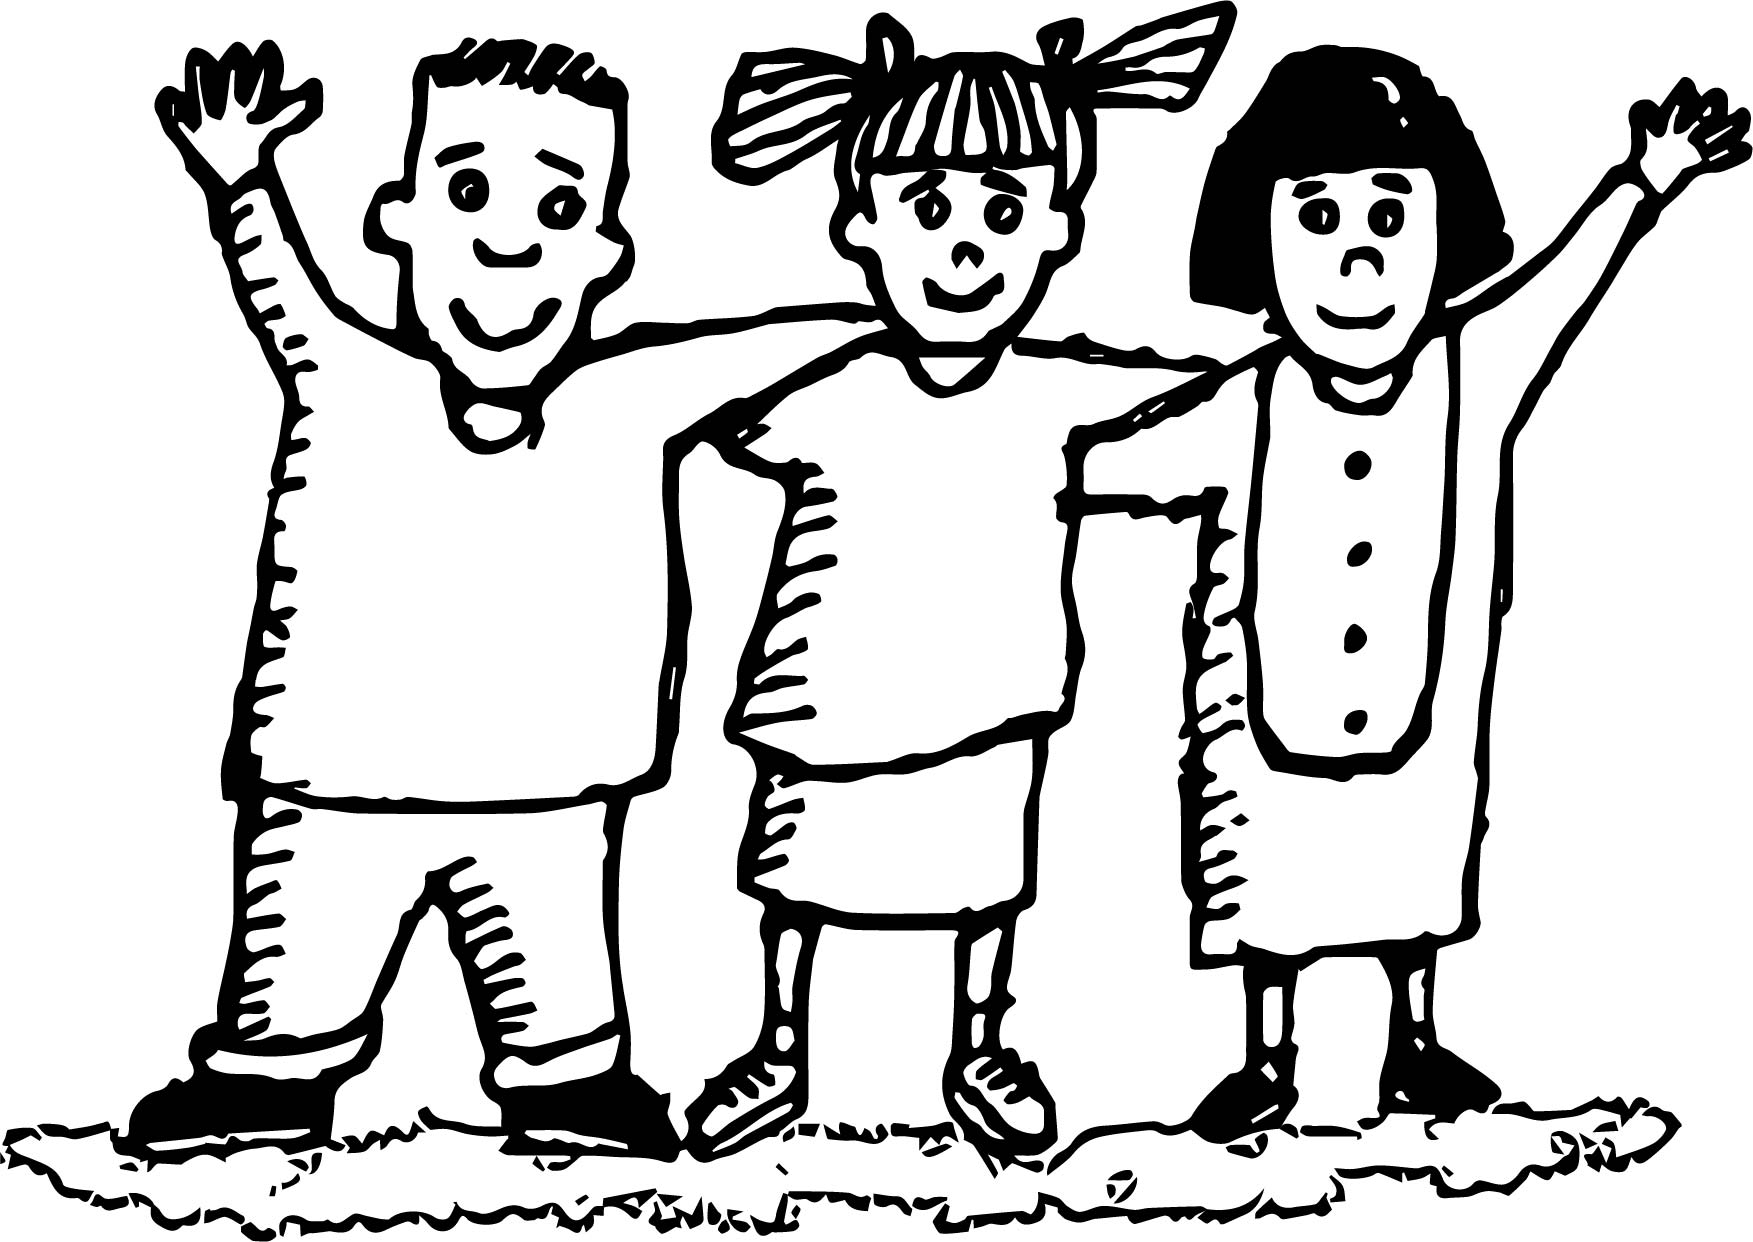 coloring pages about friendship - three friend friendship coloring page